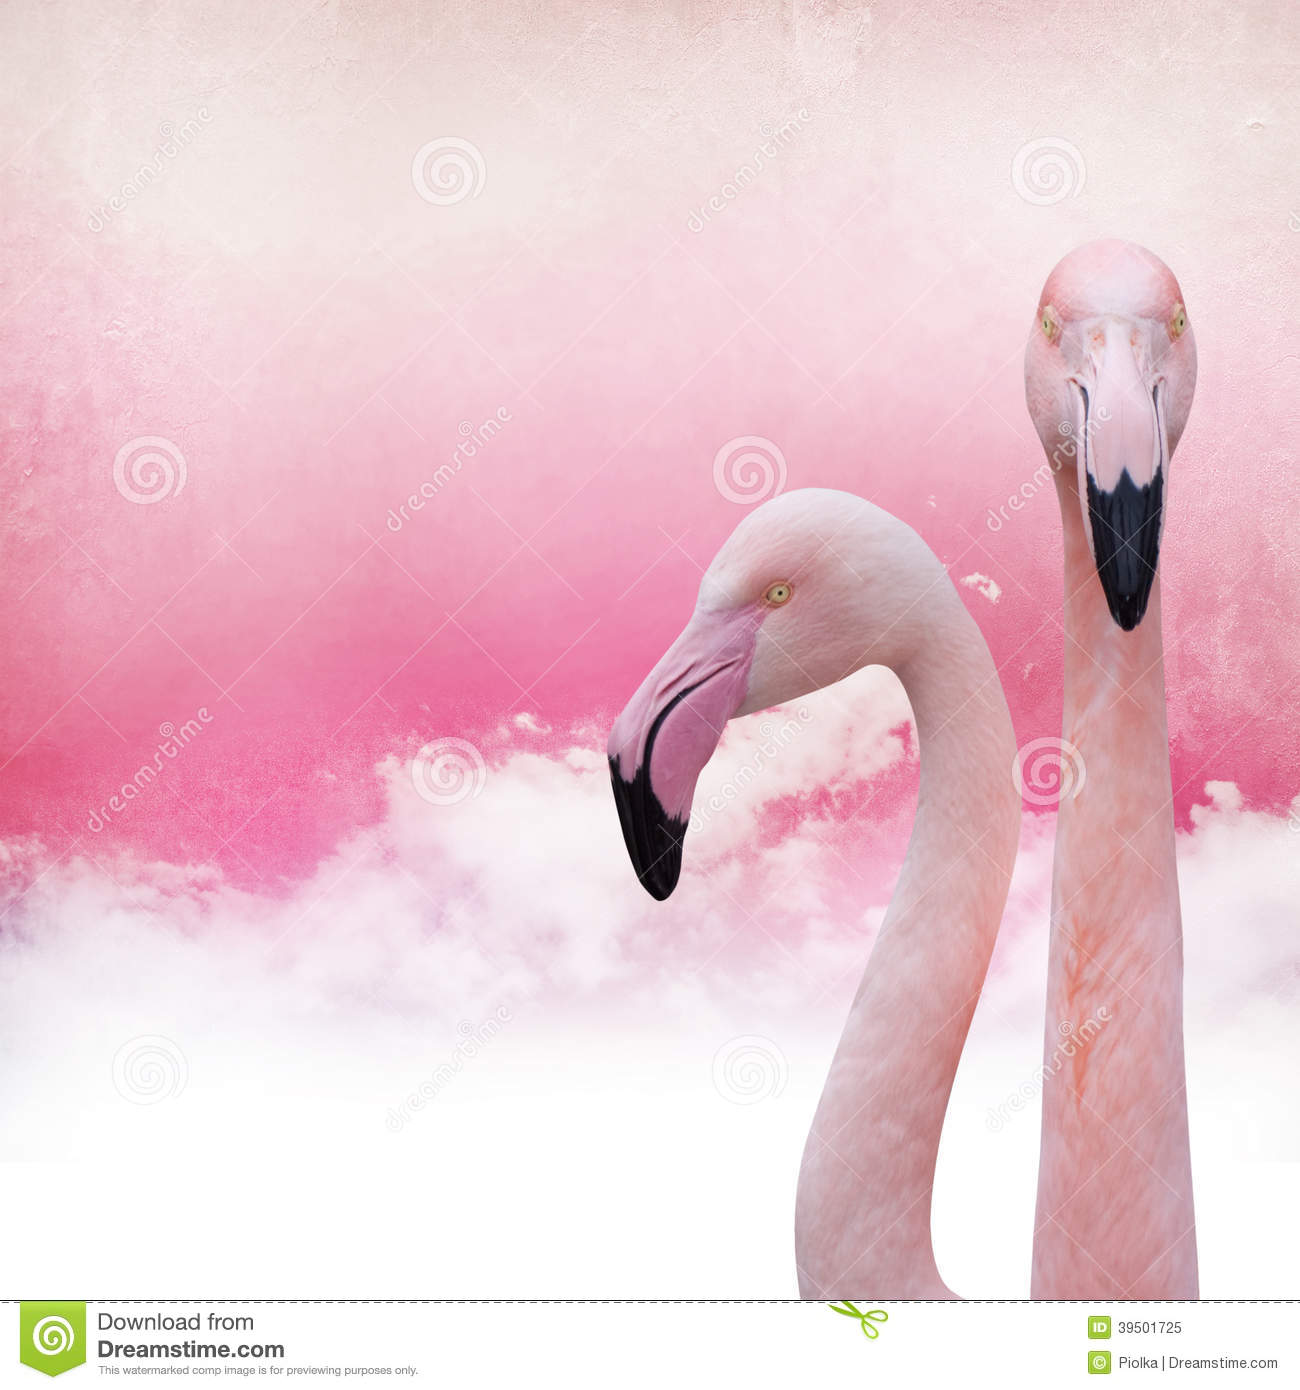 pink flamingo essay jennifer price A parody of the nobel prizes, pink flamingo essay by jennifer price the pink flamingo essay by jennifer price ig nobel prizes are awarded each year in mid-september.